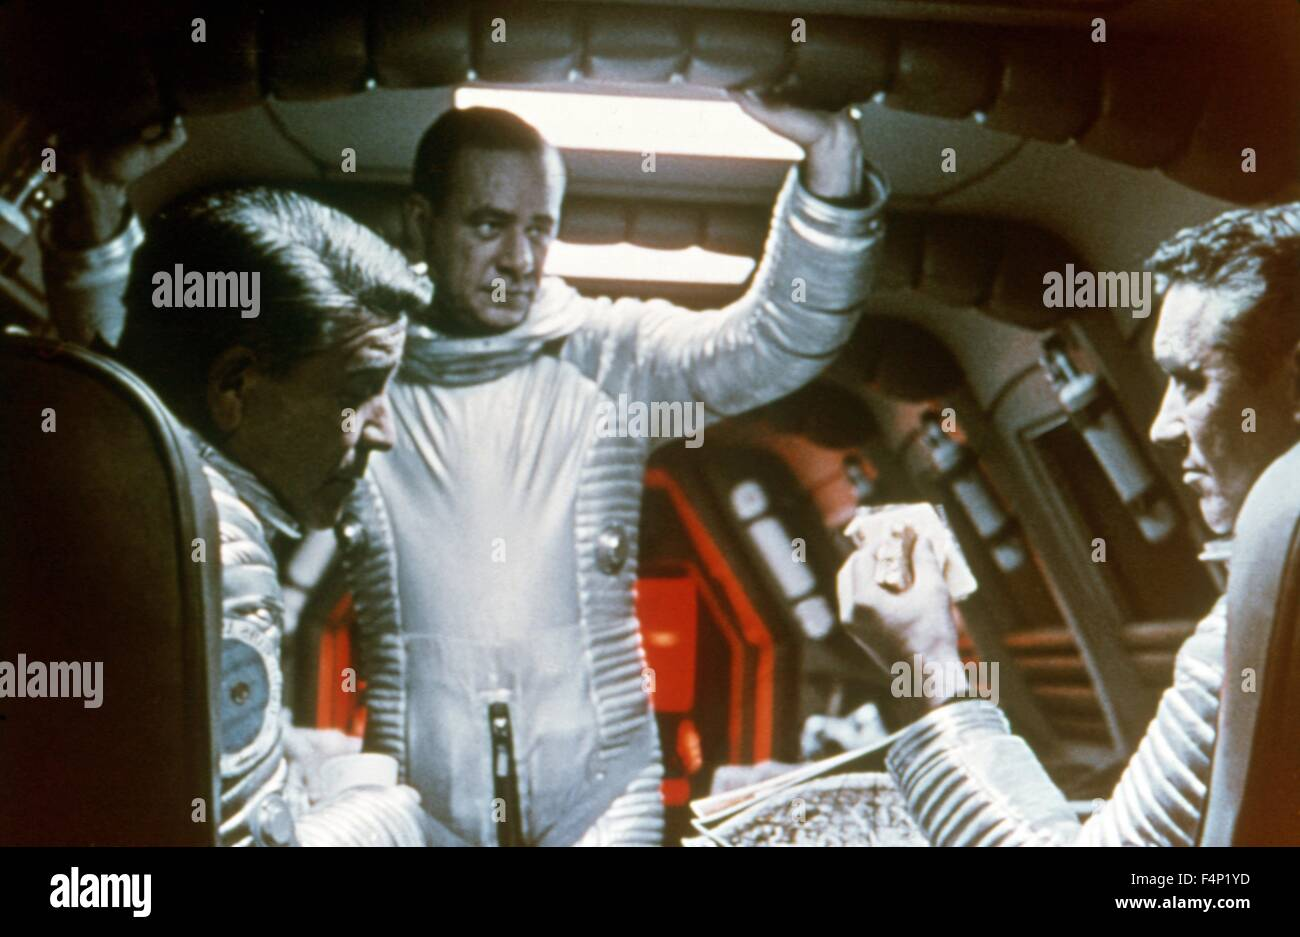 2001 A Space Odyssey 1968 directed by Stanley Kubrick - Stock Image